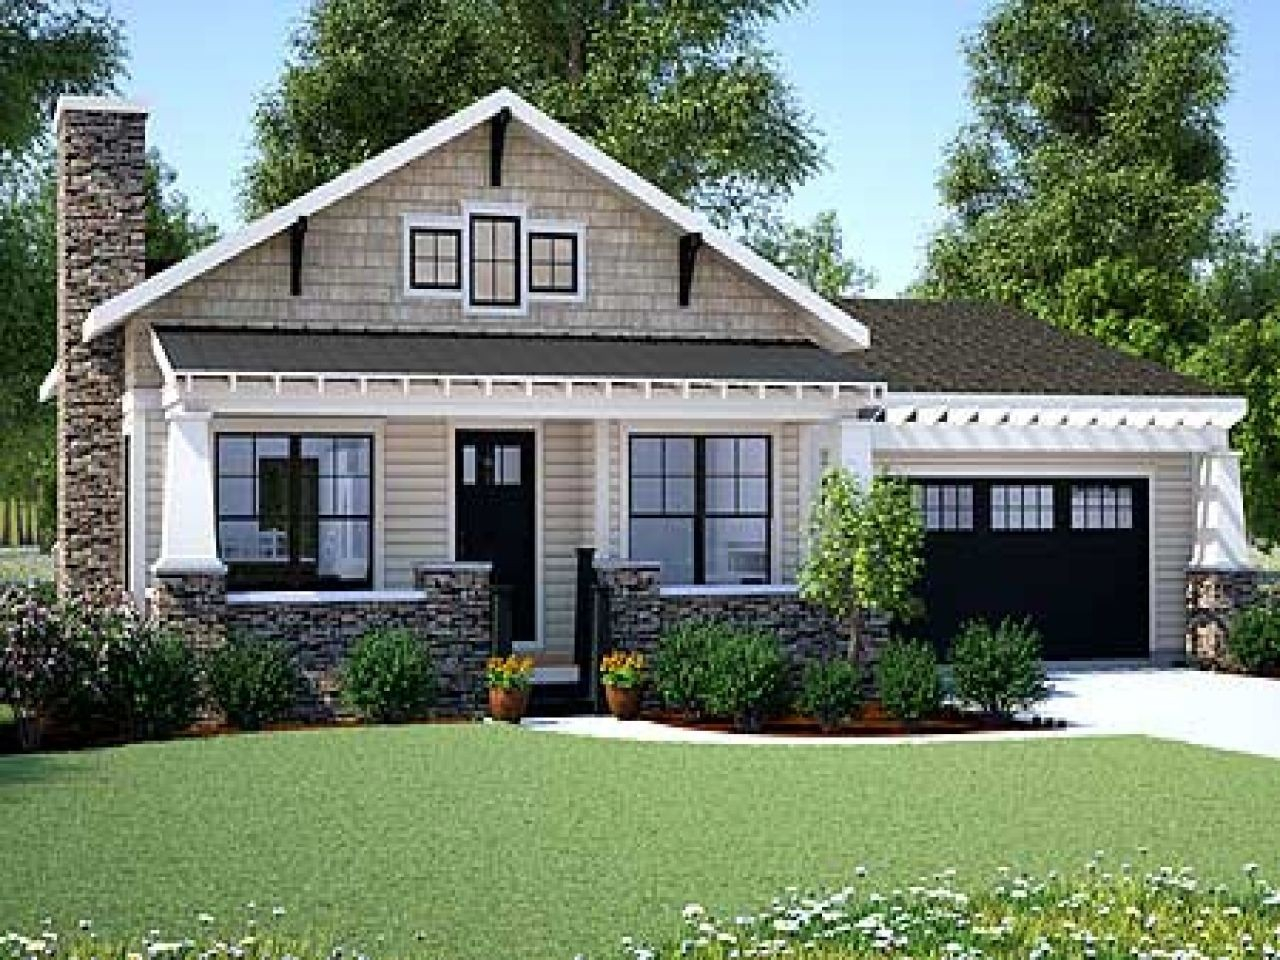 Lovely Craftsman Home Plans Awesome Bungalow House Style Luxury Small One for Bungalow House Style